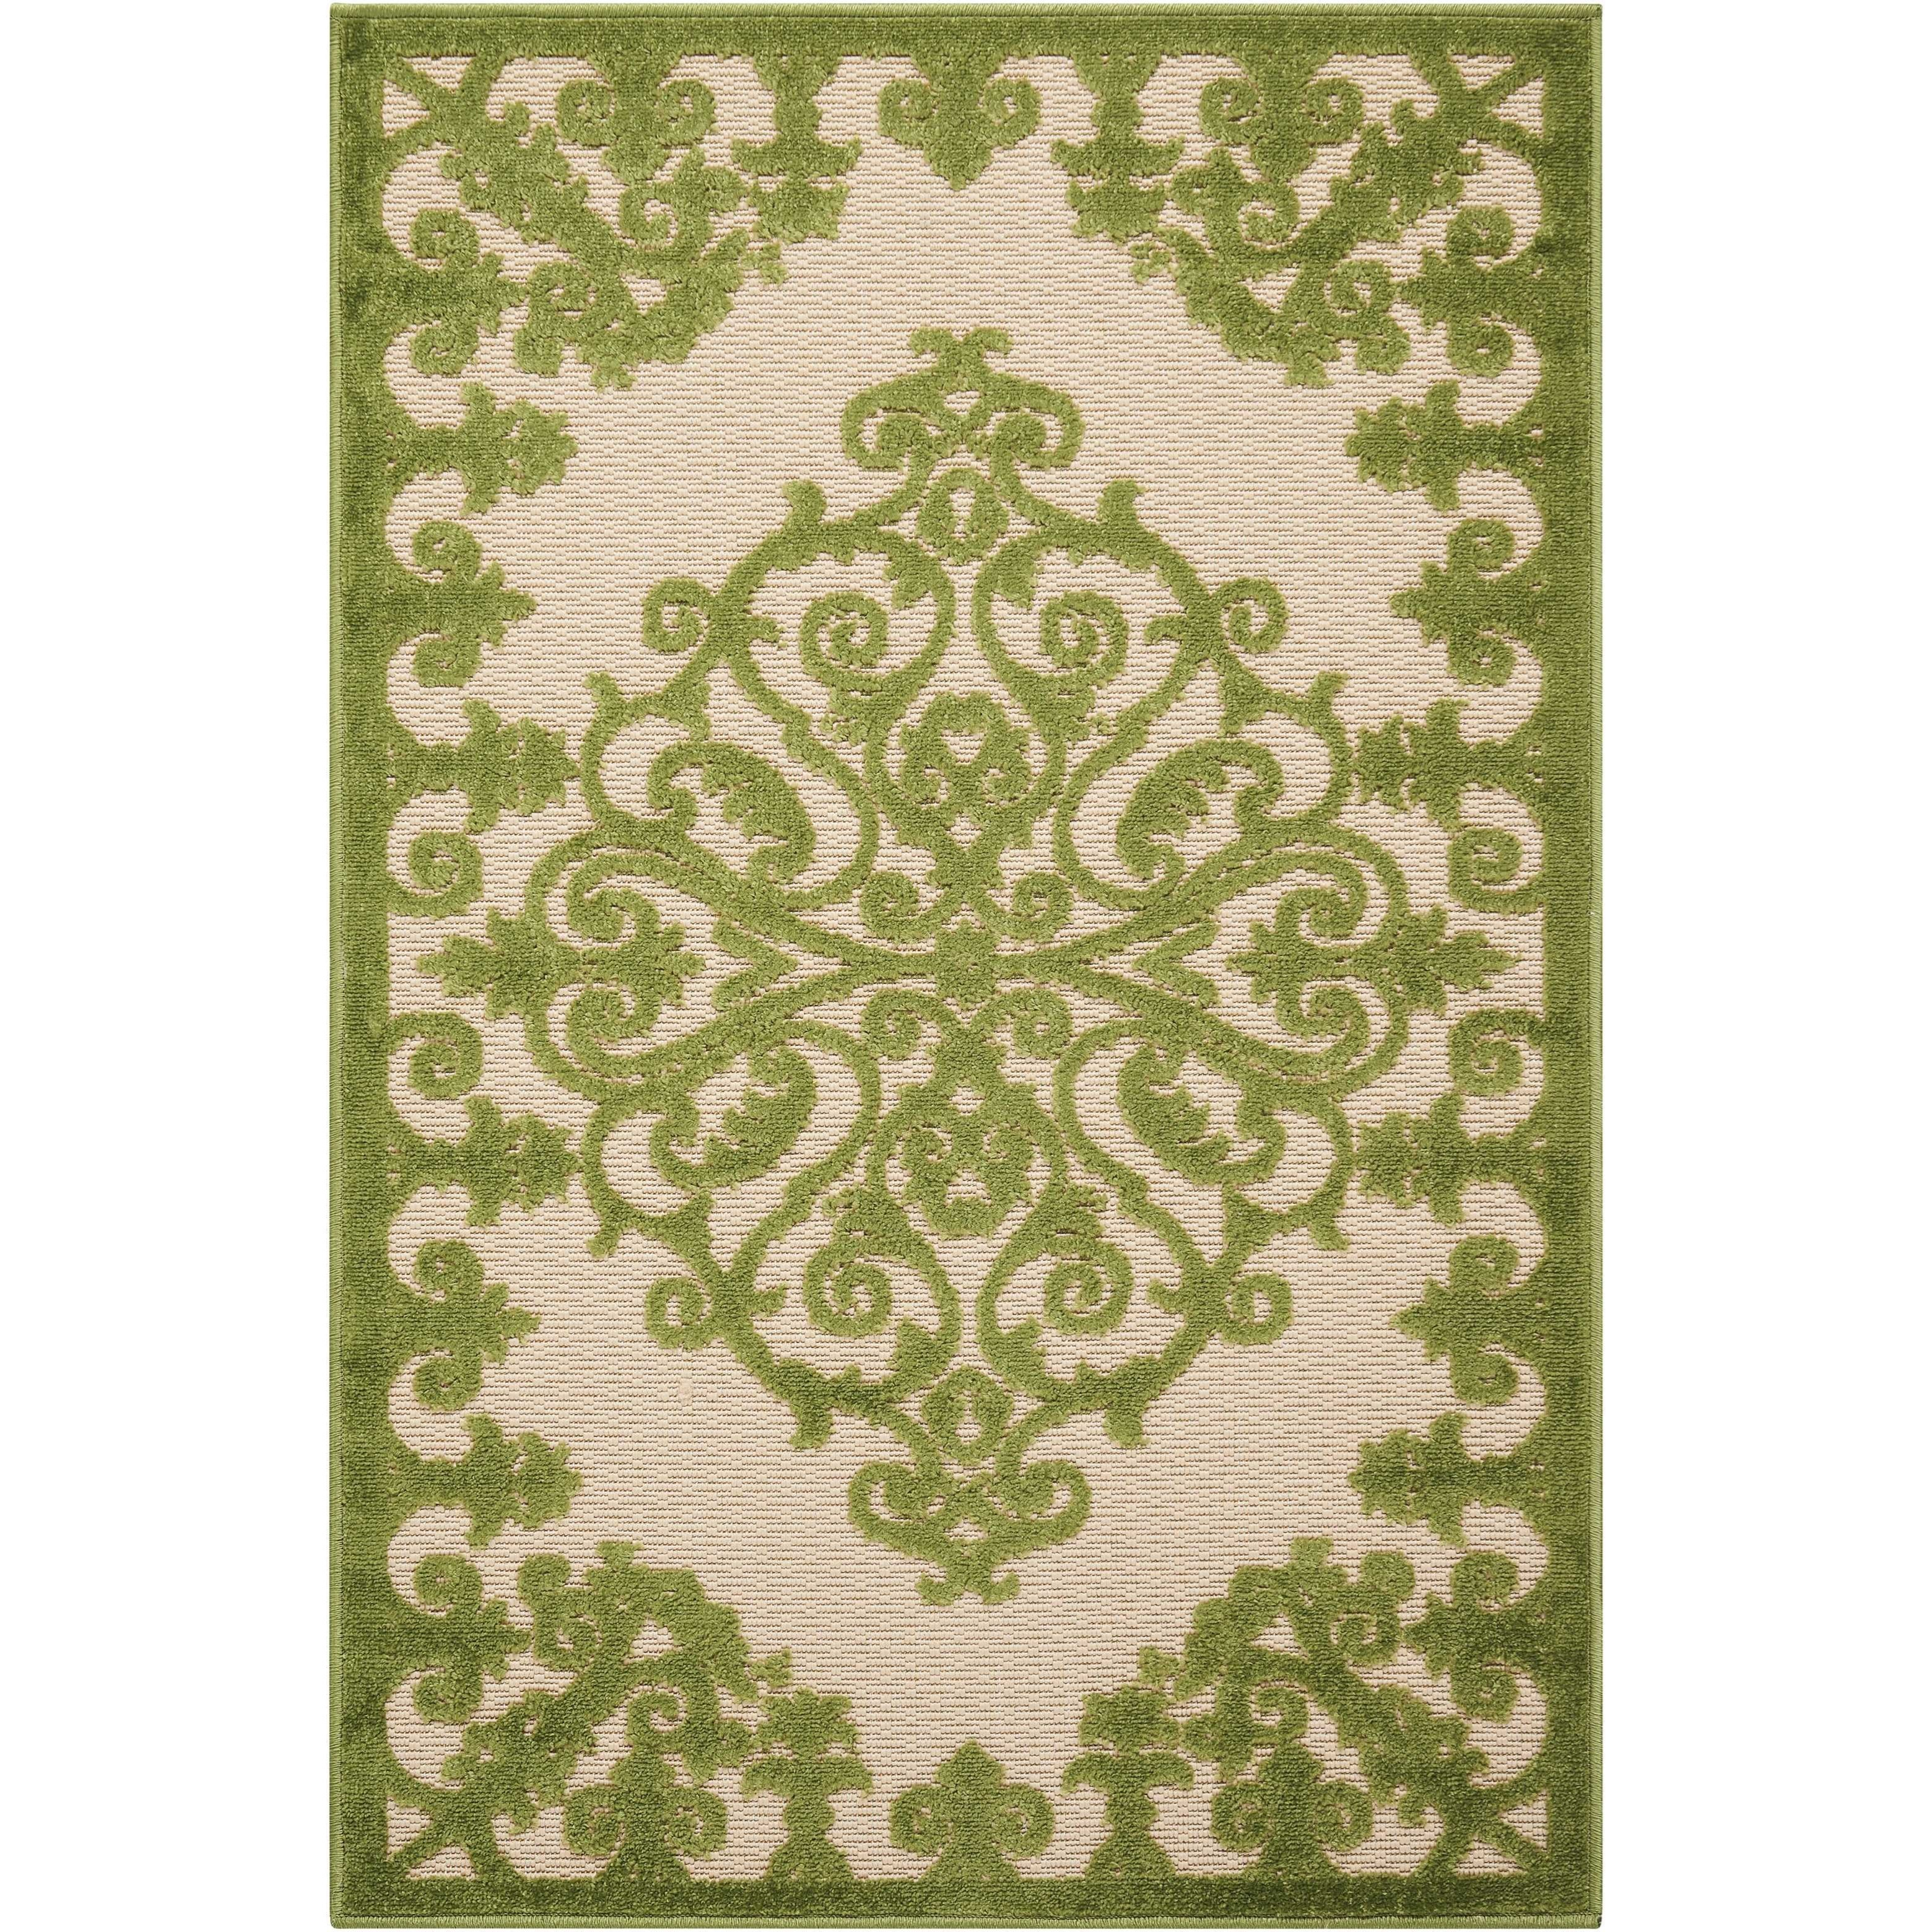 "Aloha 2'8"" x 4' Green Rectangle Rug by Nourison at Sprintz Furniture"